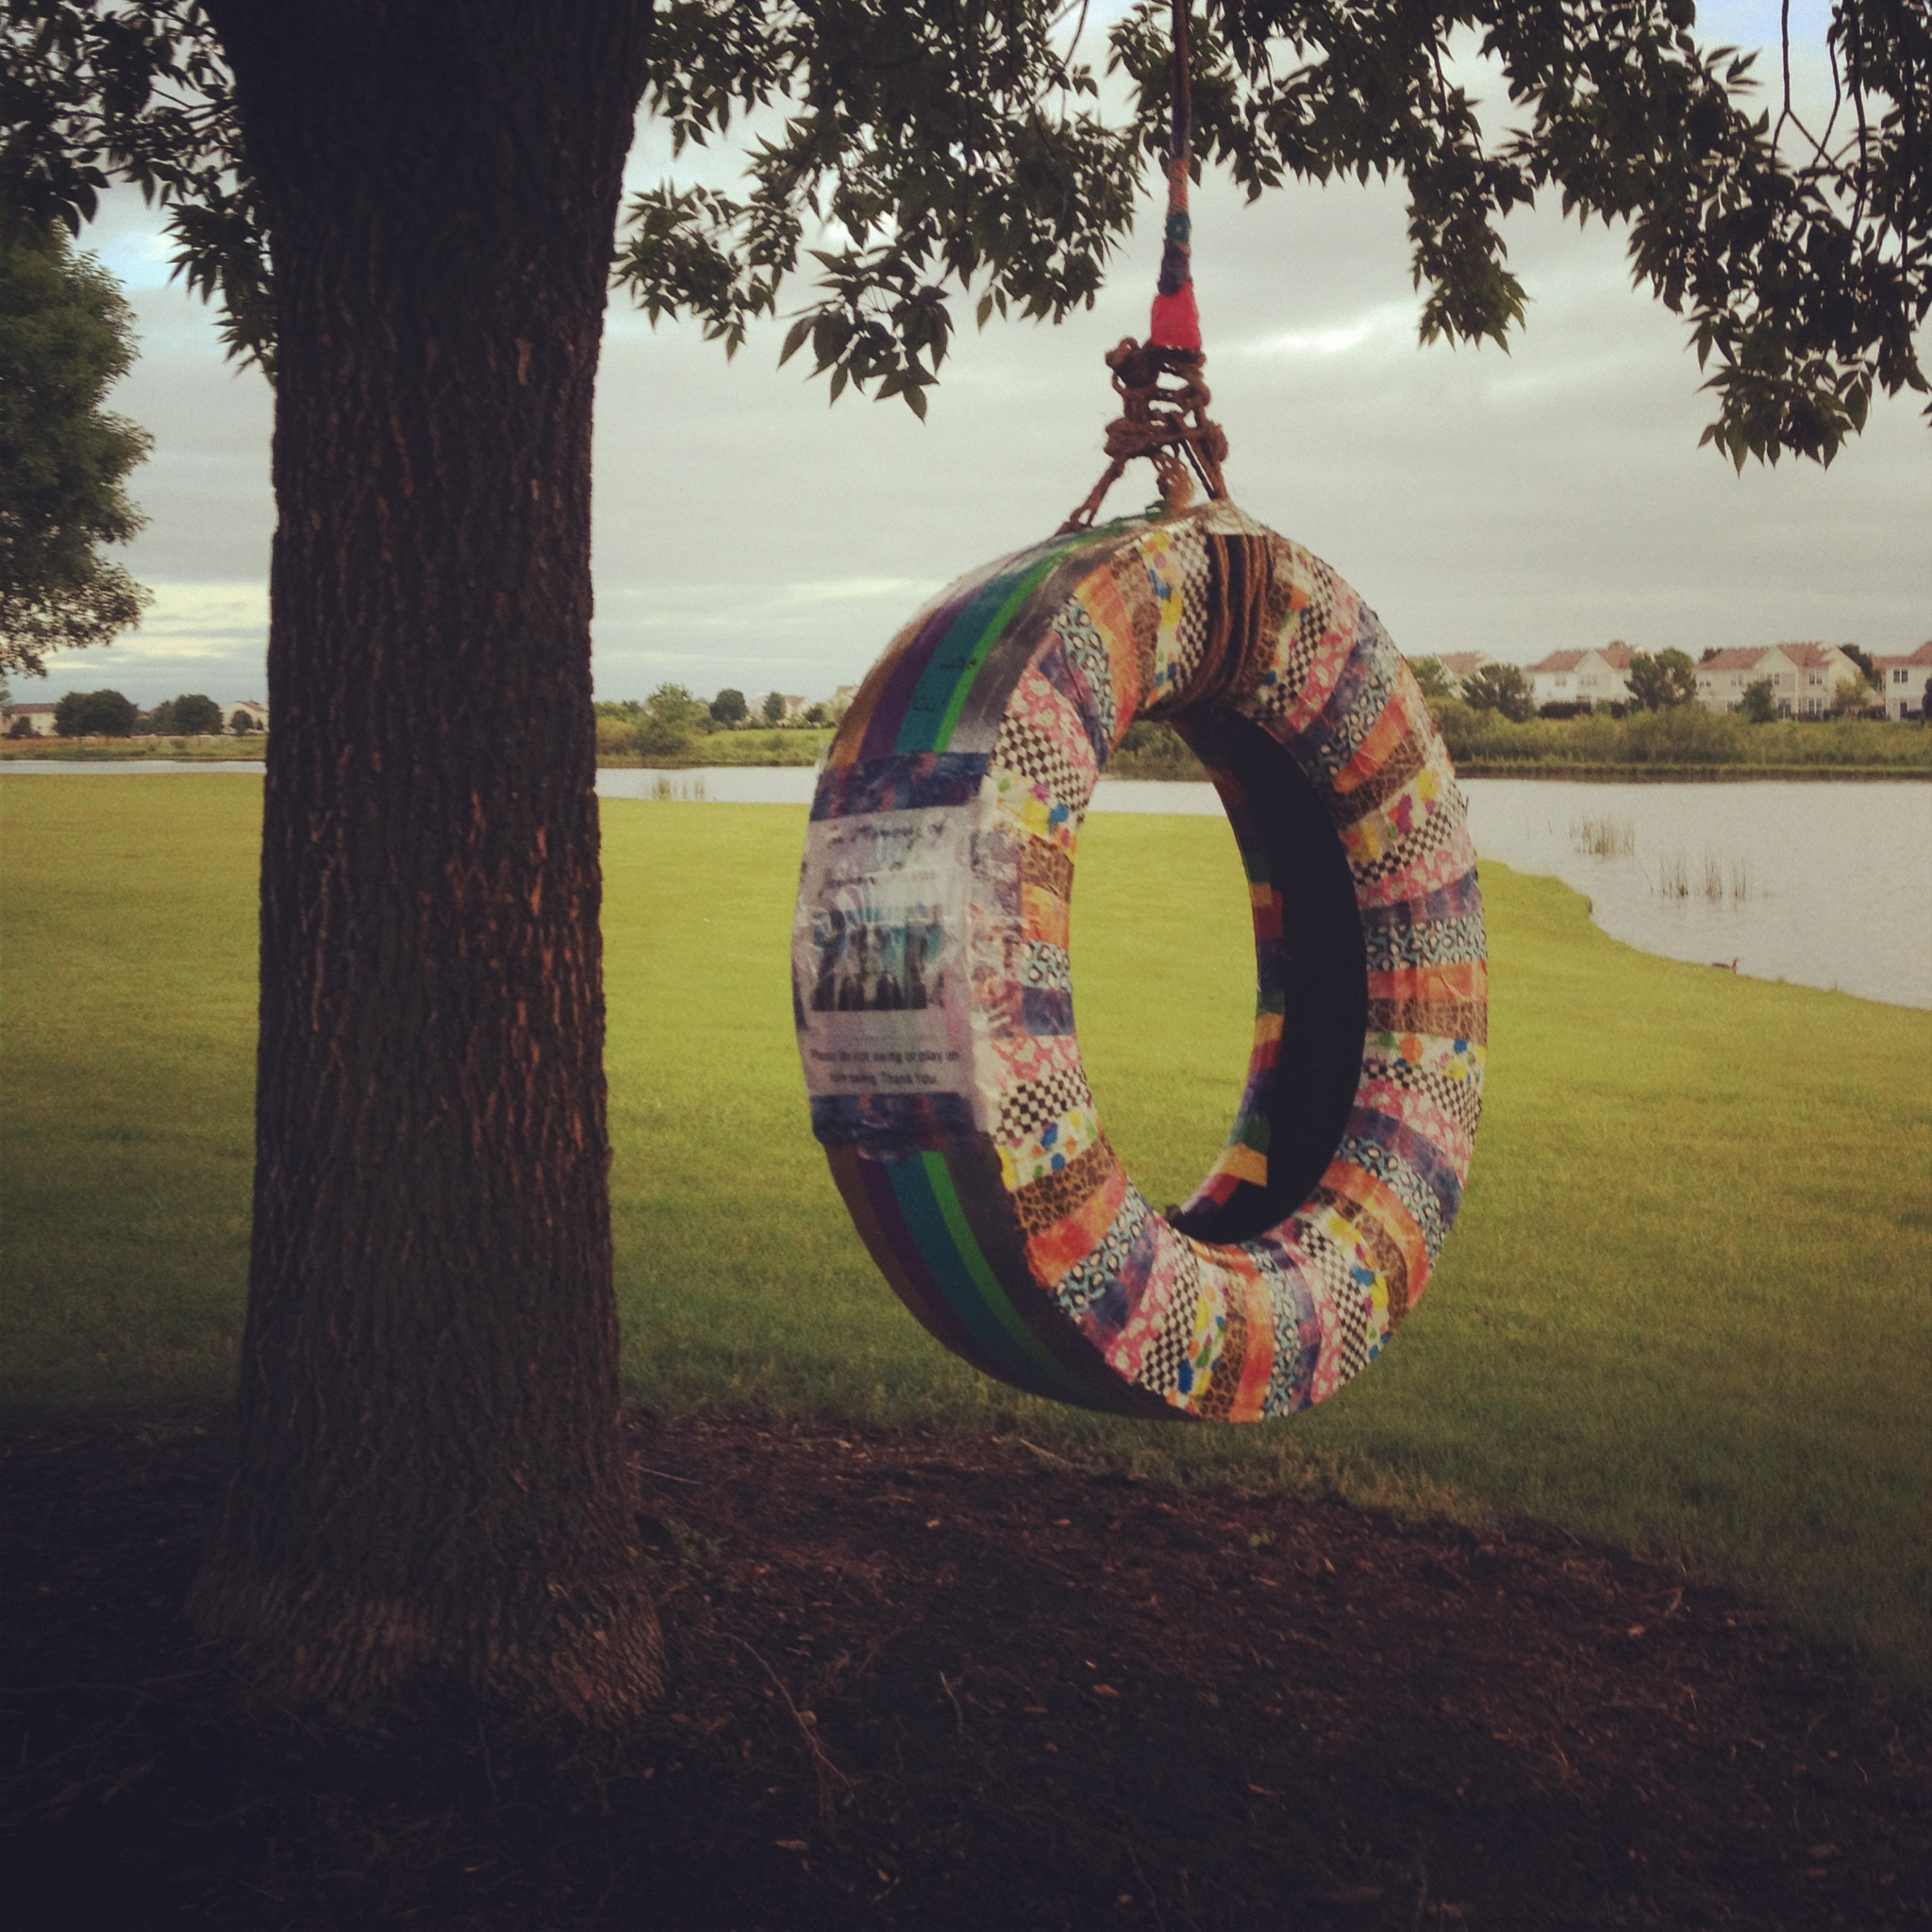 An 11 year old Memorial tire swing